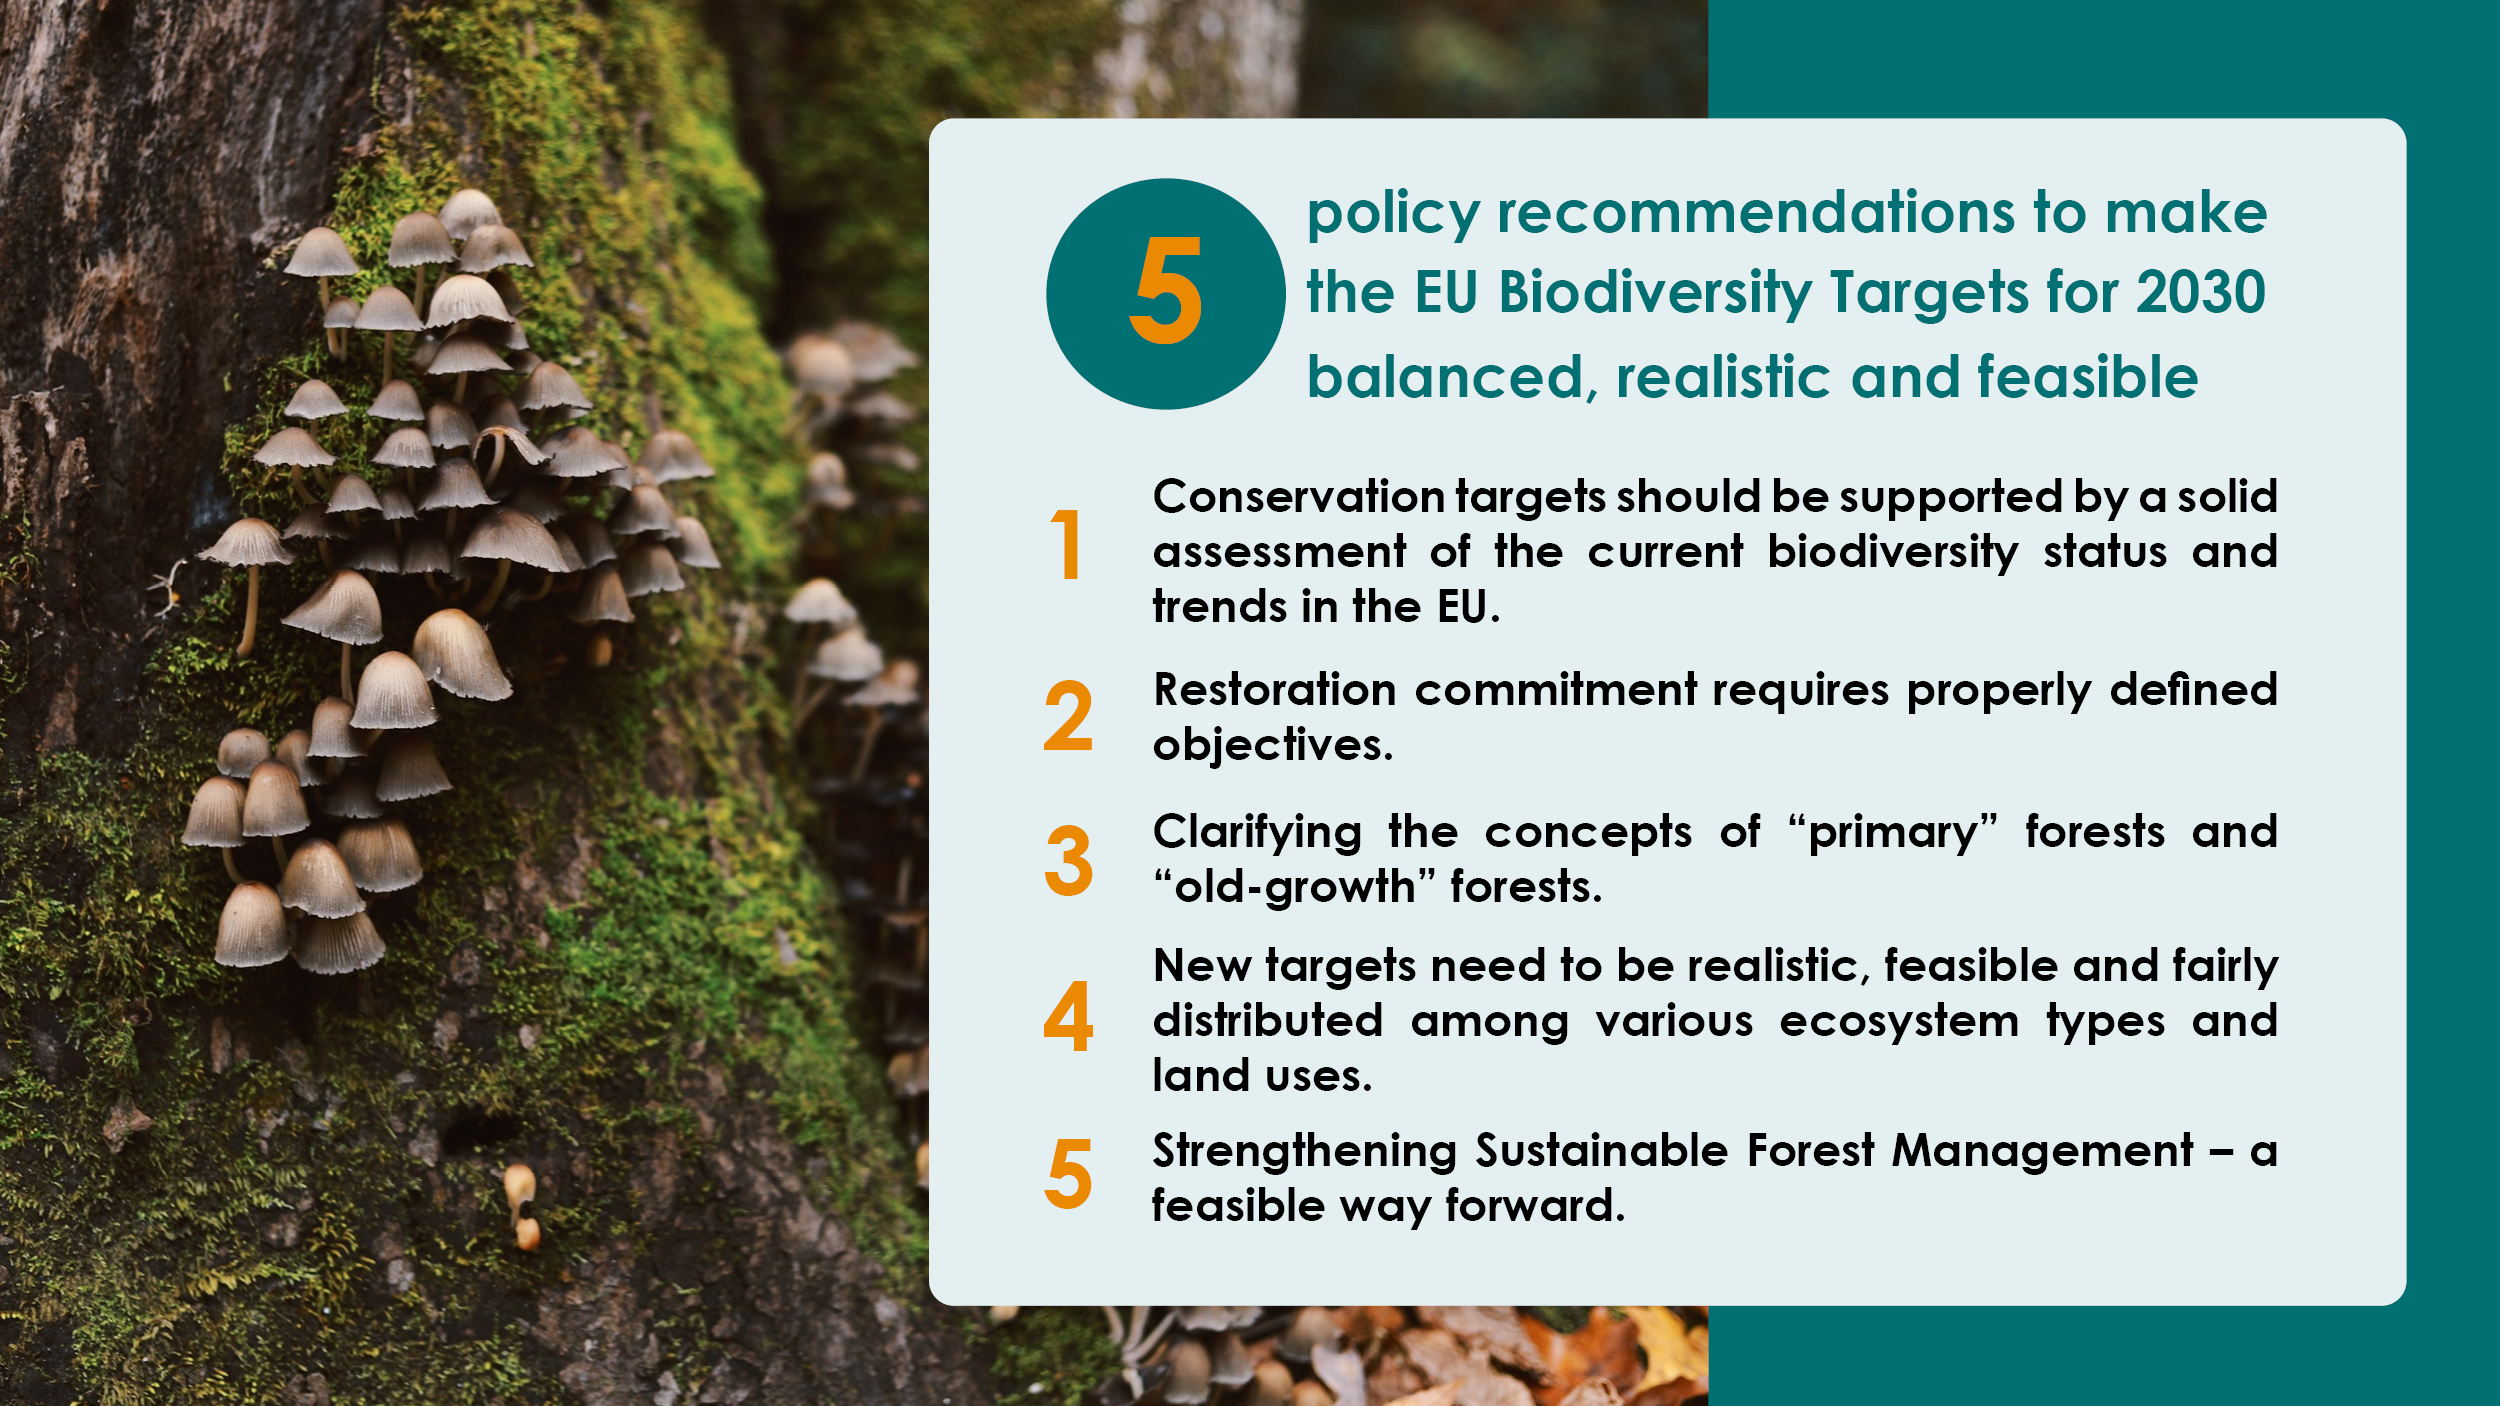 EU Commission plans green reset for nature, food and farming | WWF